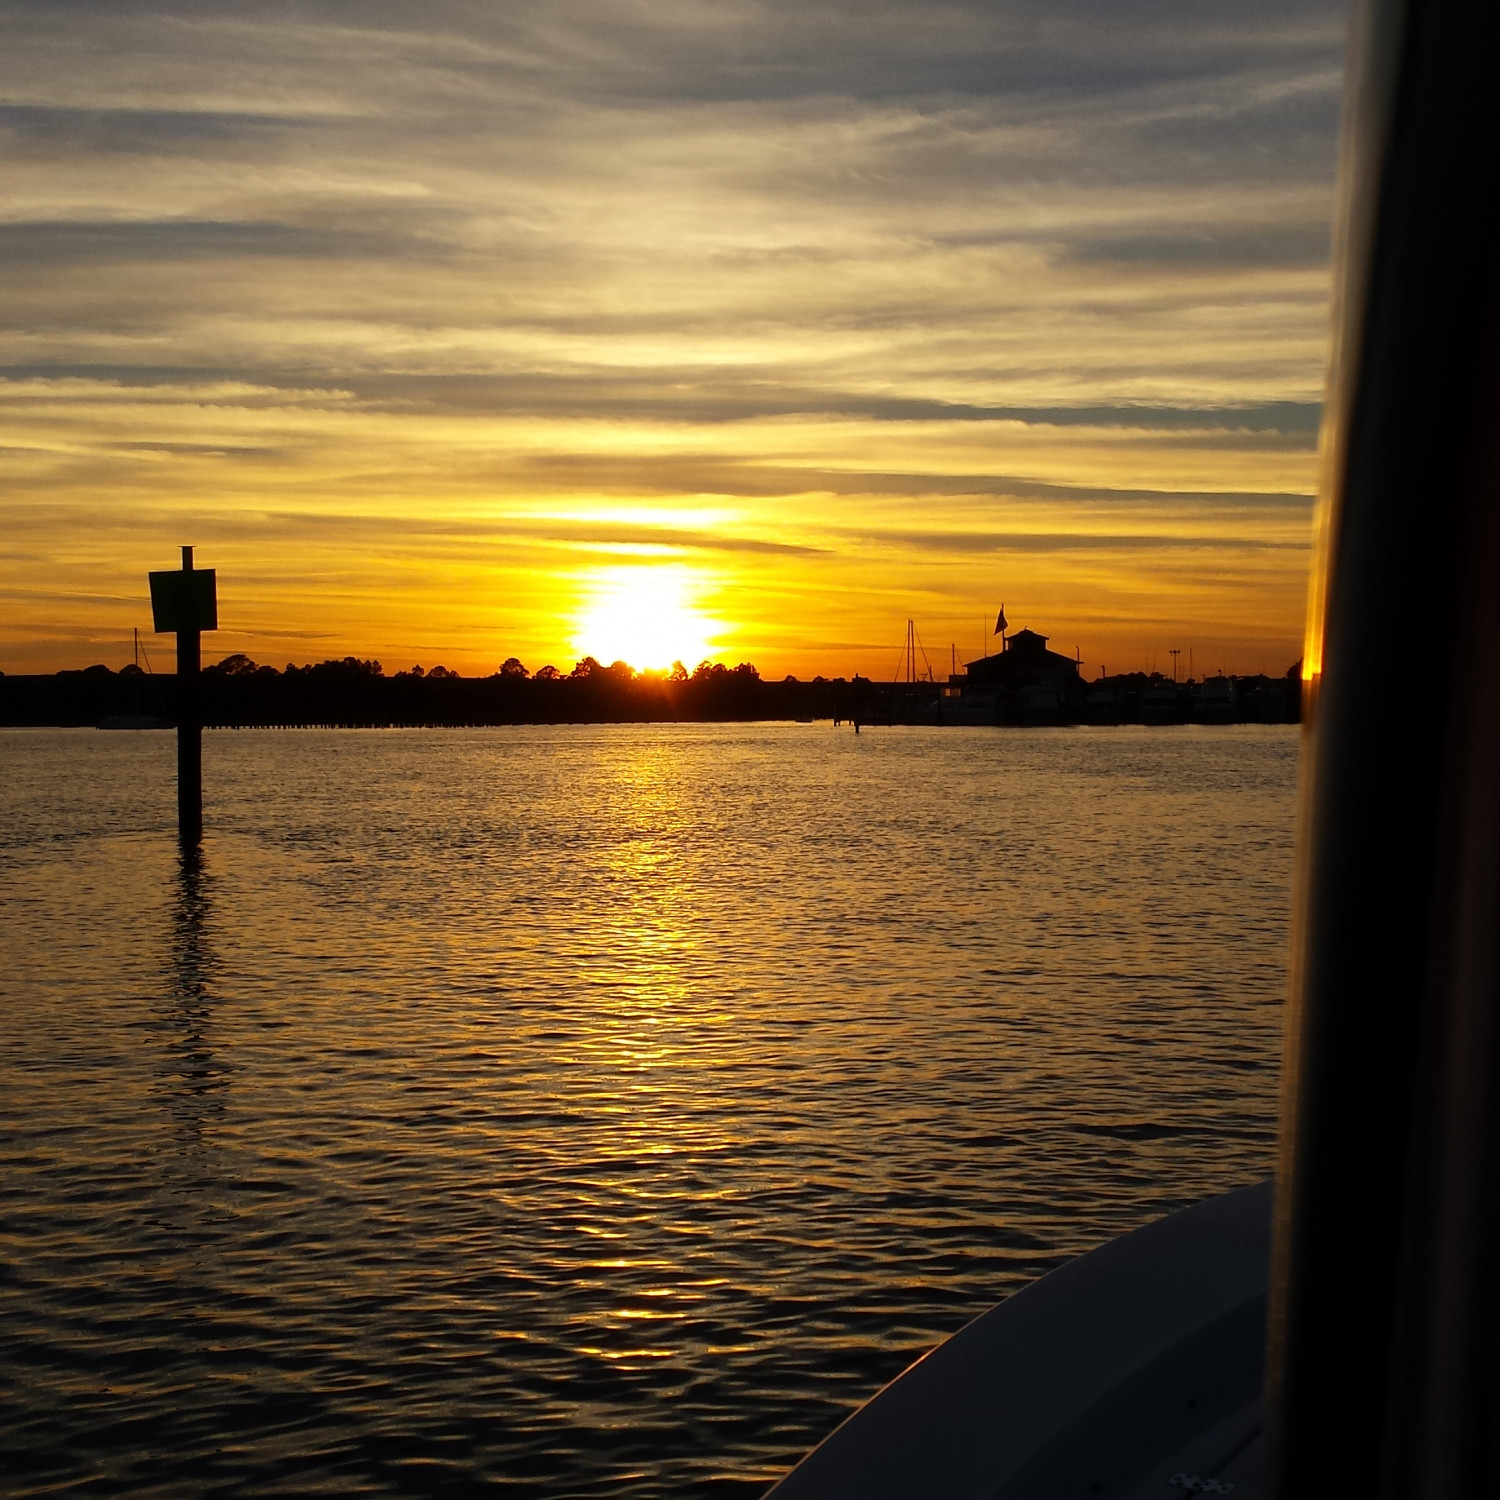 Title: Sunset - On board their Sportsman Masters 247 Bay Boat - Location: Carrabelle Fl. Participating in the Photo Contest #SportsmanDecember2017